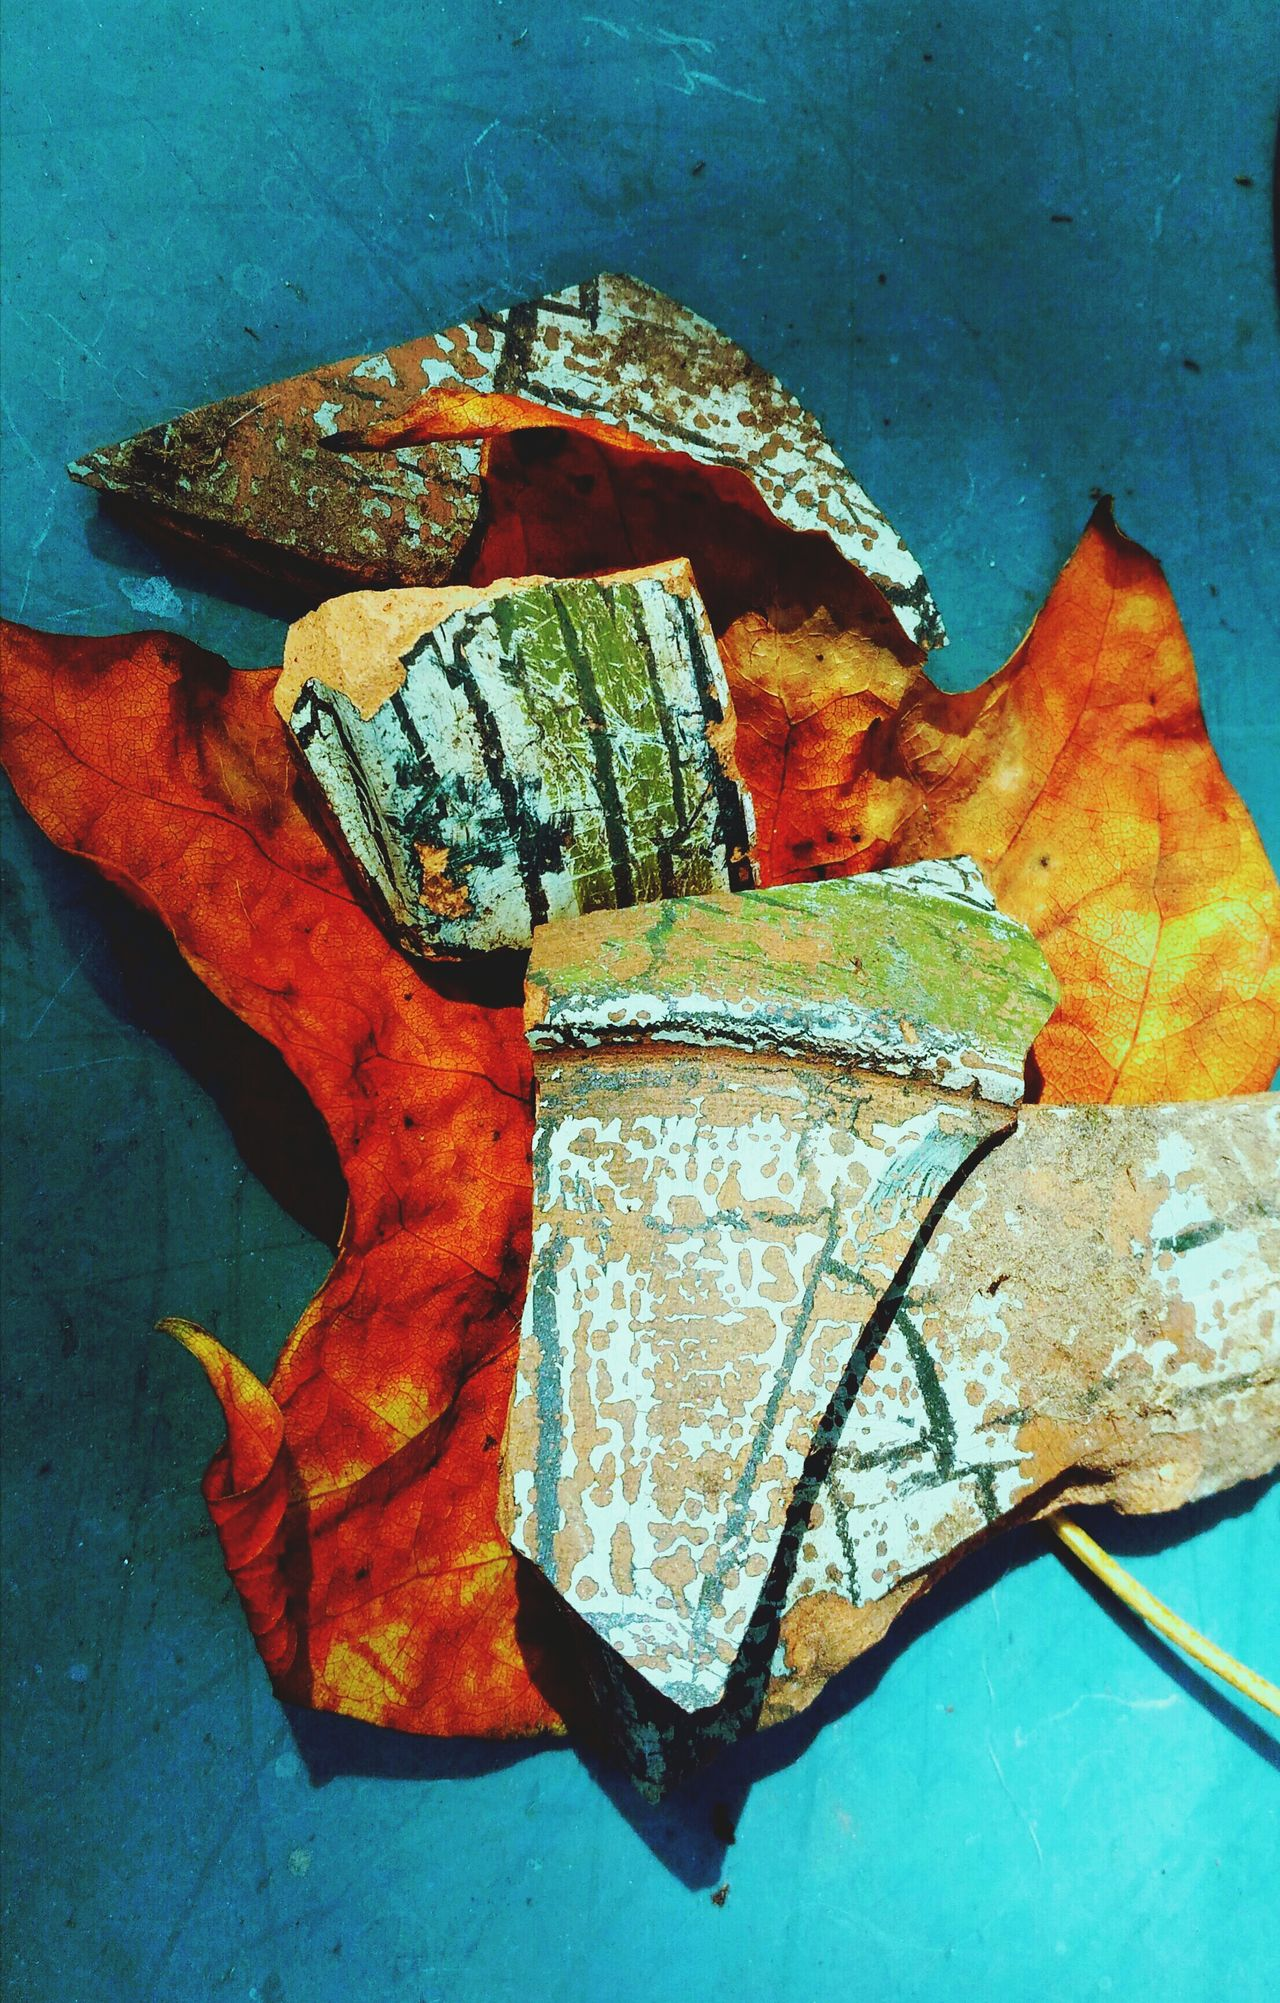 Broken pottery shards snd autumn leaf. Close-up StillLifePhotography Colors Of Nature Colors Of Autumn Green Color Orange Color Pottery Pieces Broken Pots Autumnbeauty Leaf Autumn Autumn Leaves Autumn Collection Autumn Colors Fall Colors Broken Pottery Pottery Shard Focus On Foreground Nature Beauty In Nature Still Art Leafphotography Artistic Photography Artistic Photo Artistic Expression